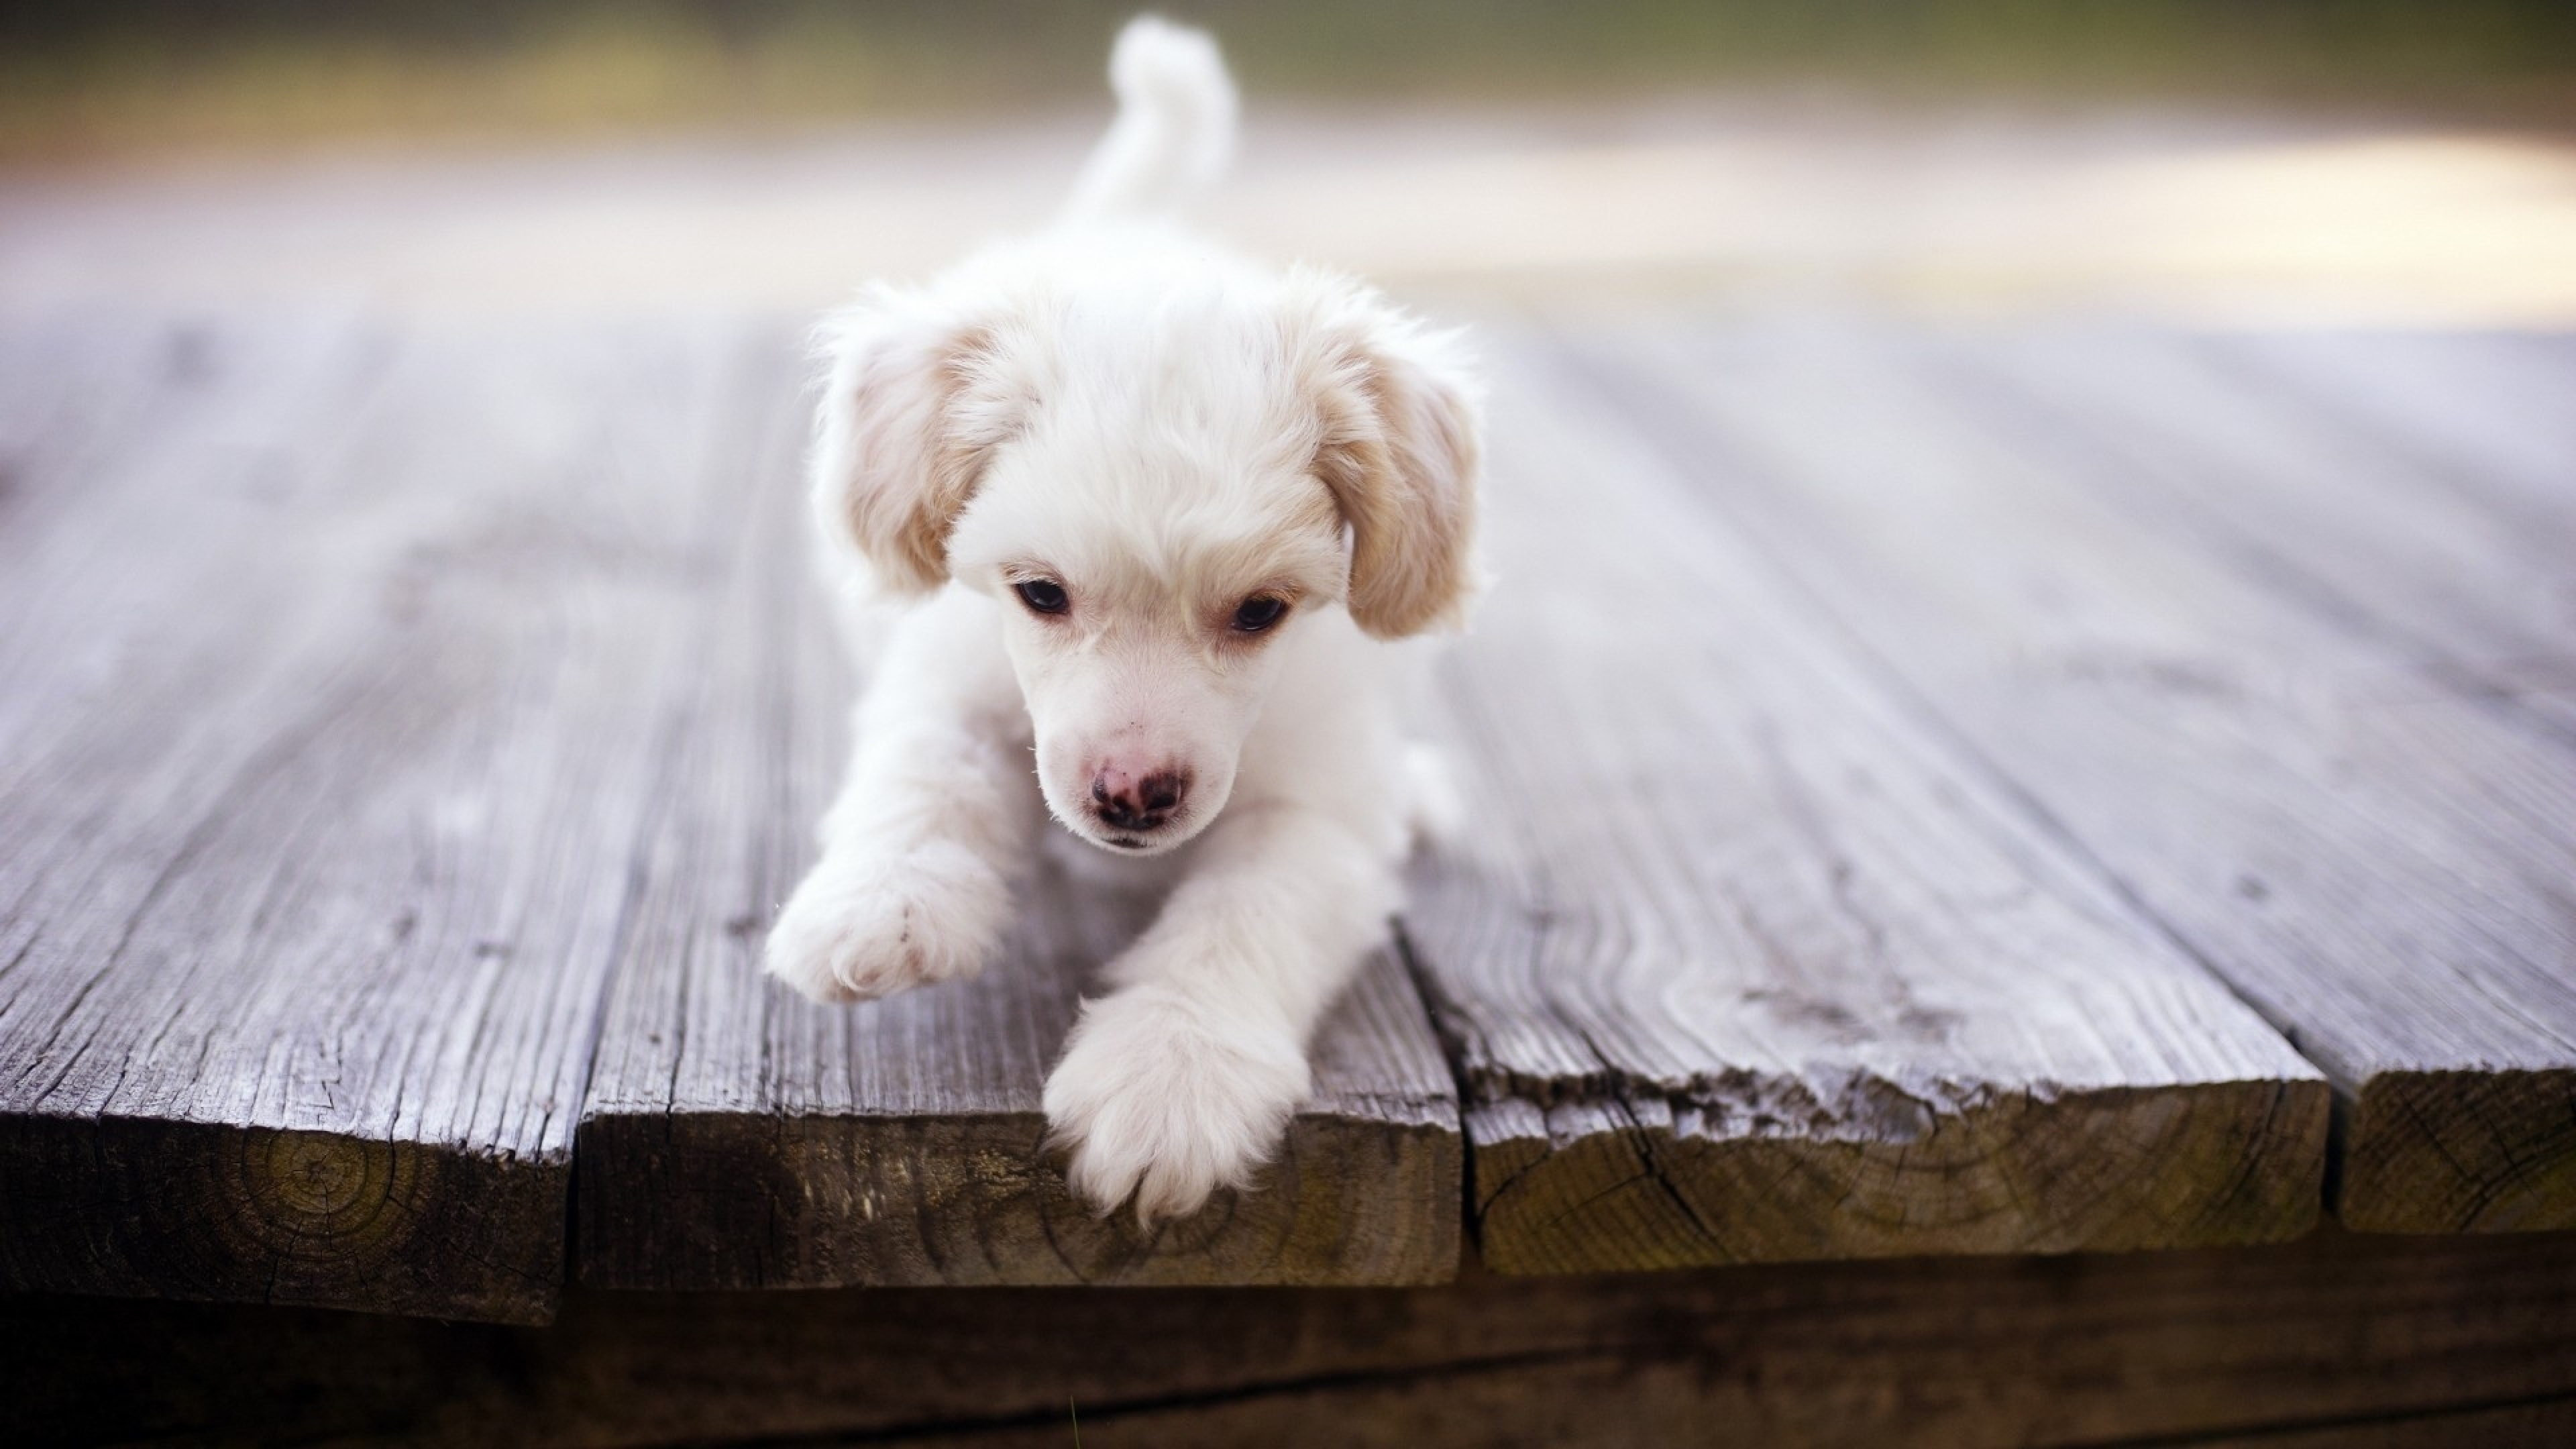 cute dog on wooden planks wallpaper 45027